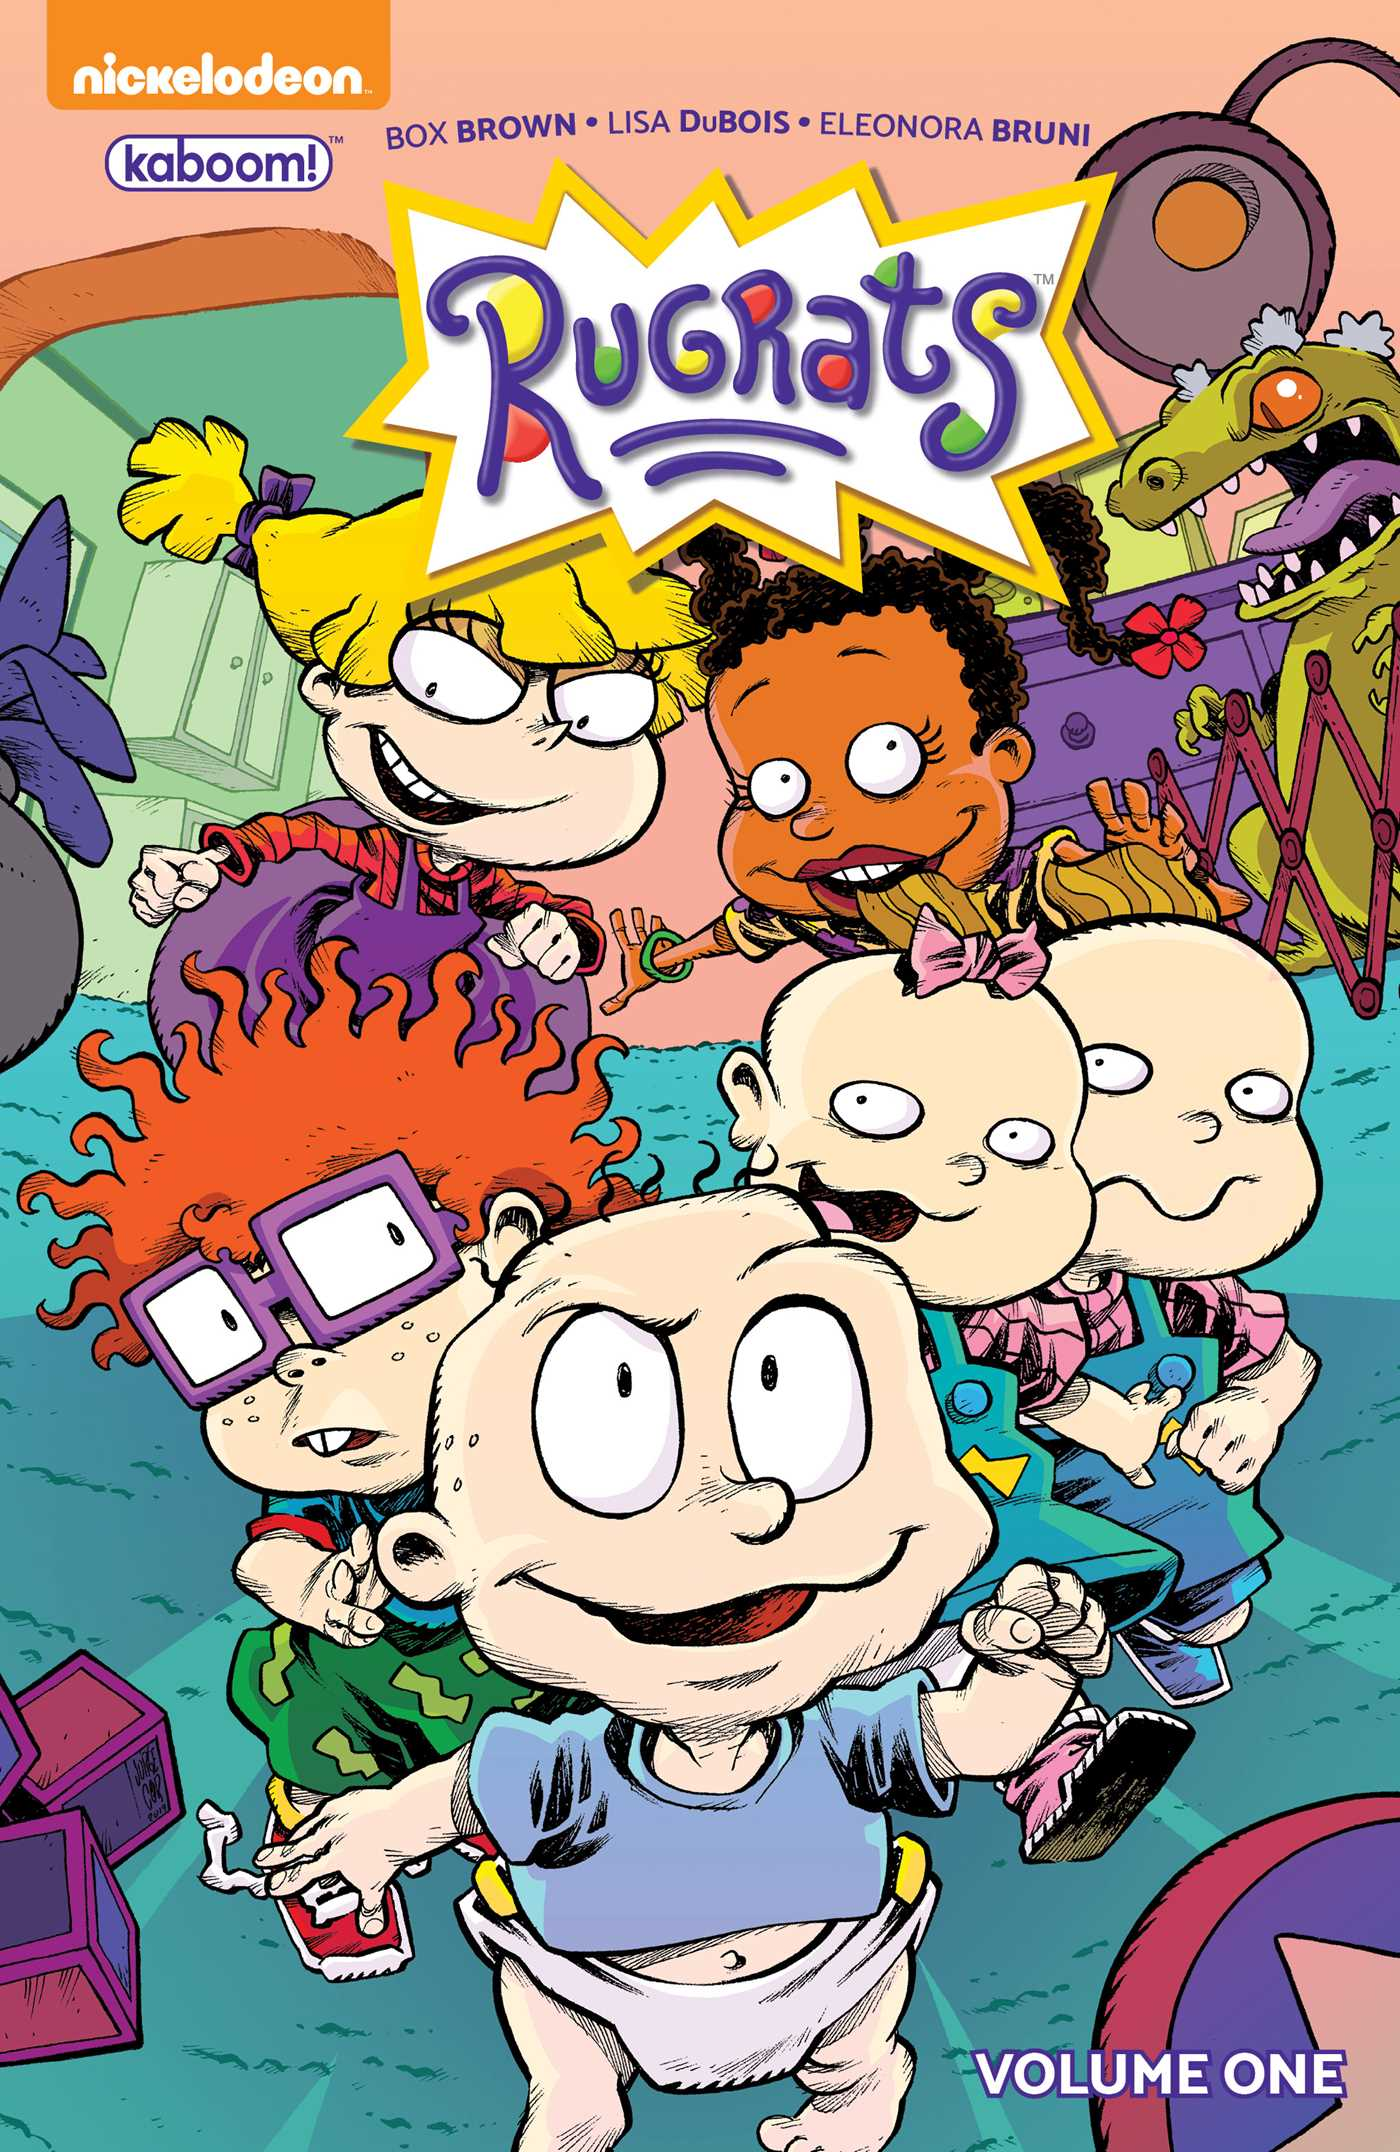 Rugrats vol 1 9781684151769 hr